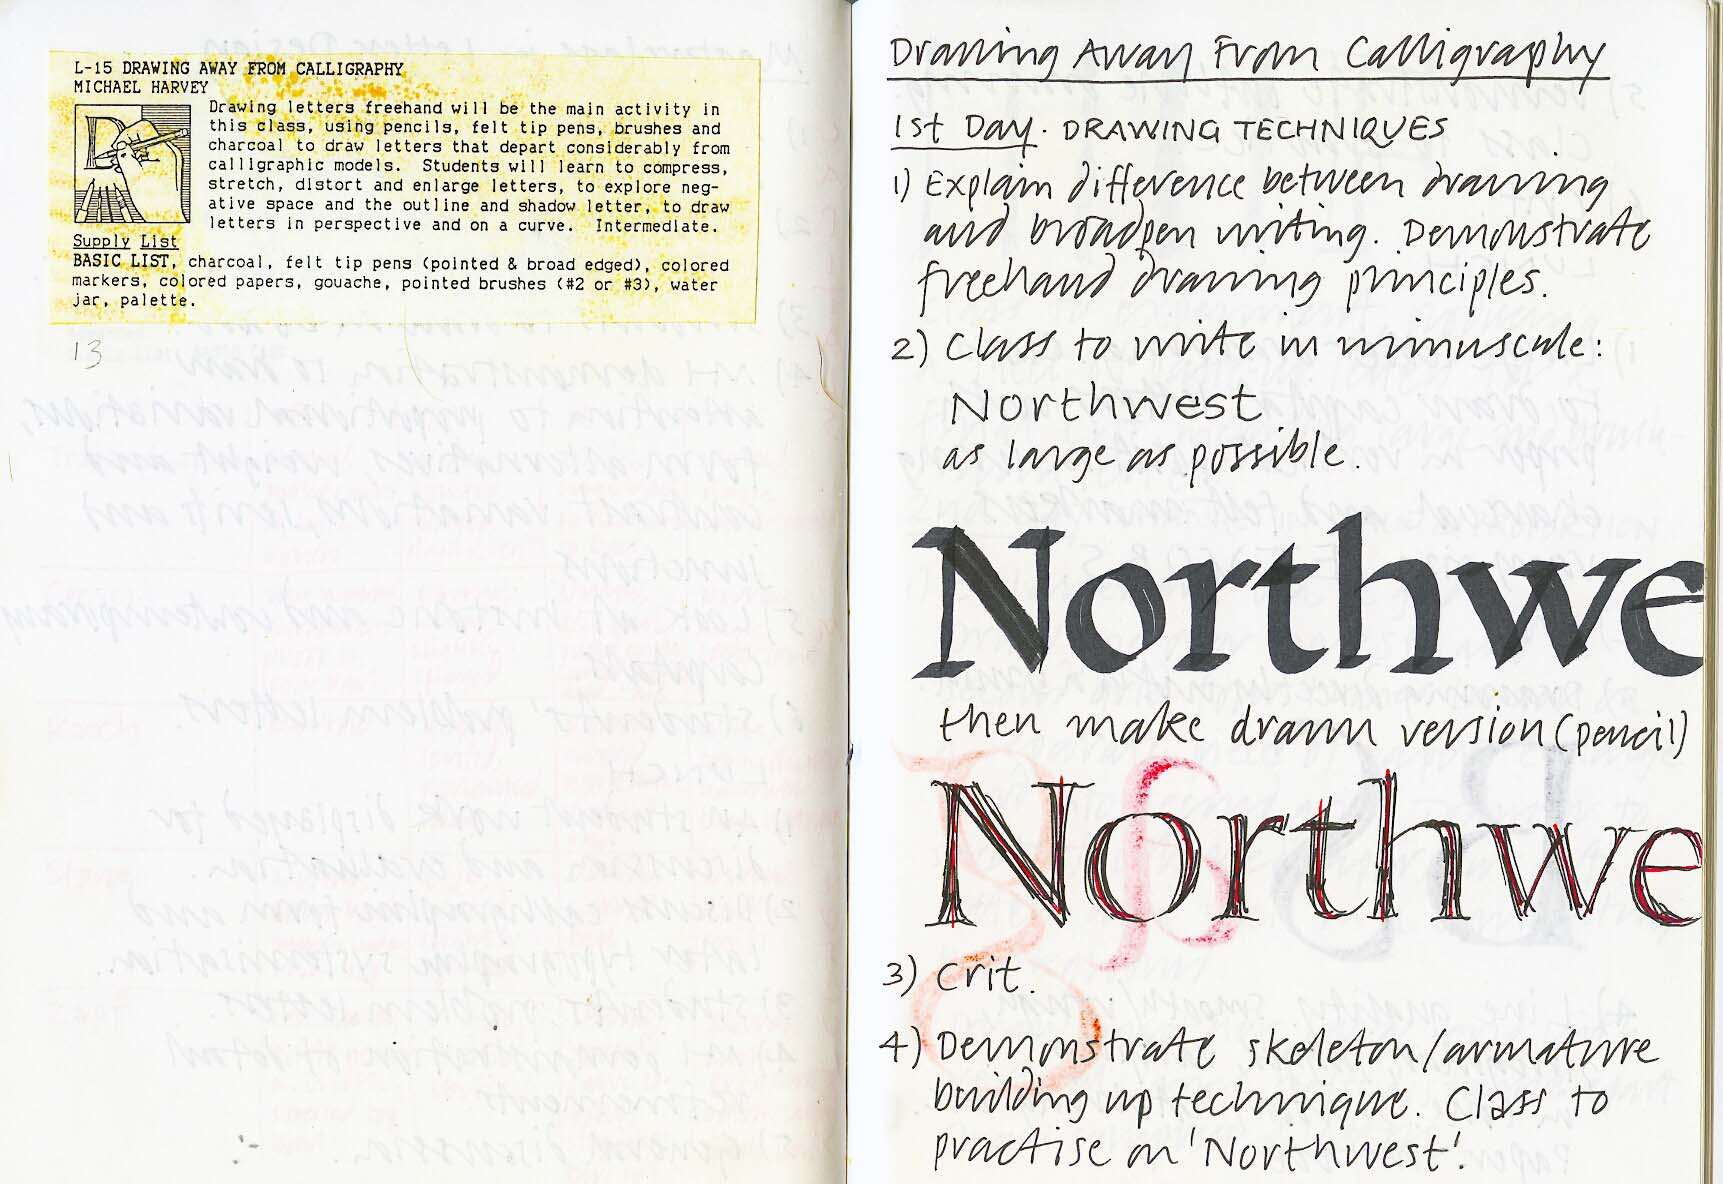 Portland 1991 – Calligraphy Northwest #5